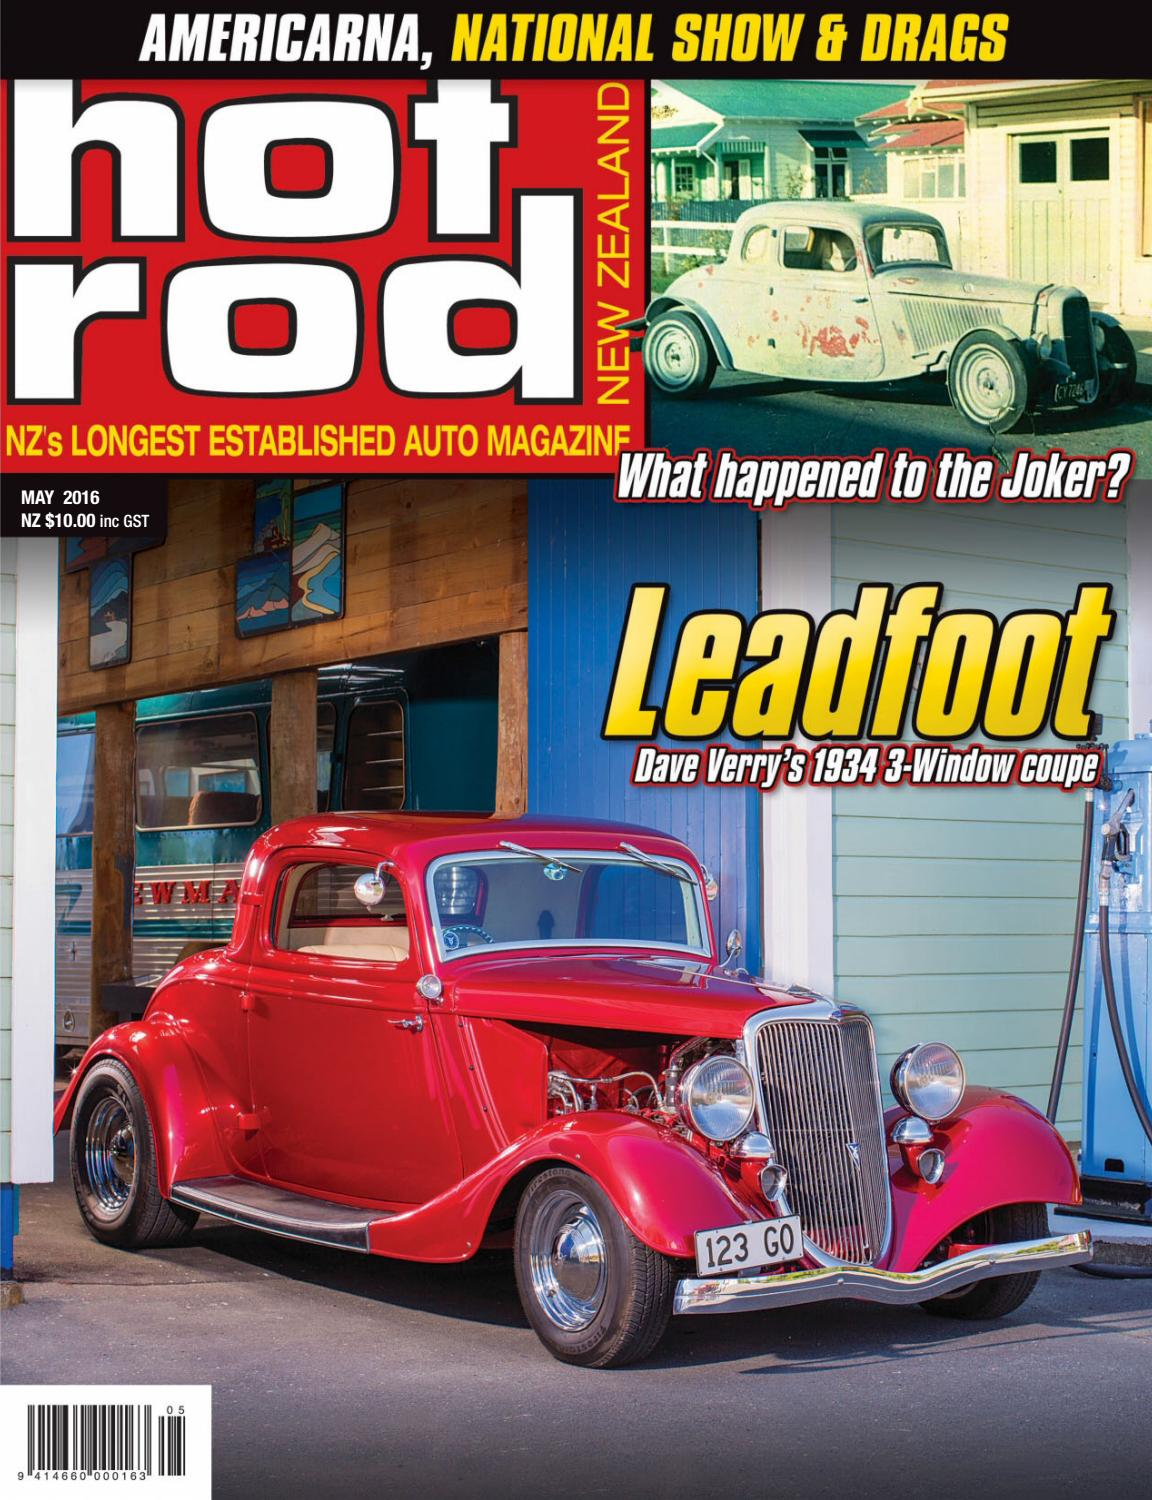 12sdcsdscd By 11blabmagg42 Issuu Alston Racing Introduces New Power Drag Wiring Kit Heidts